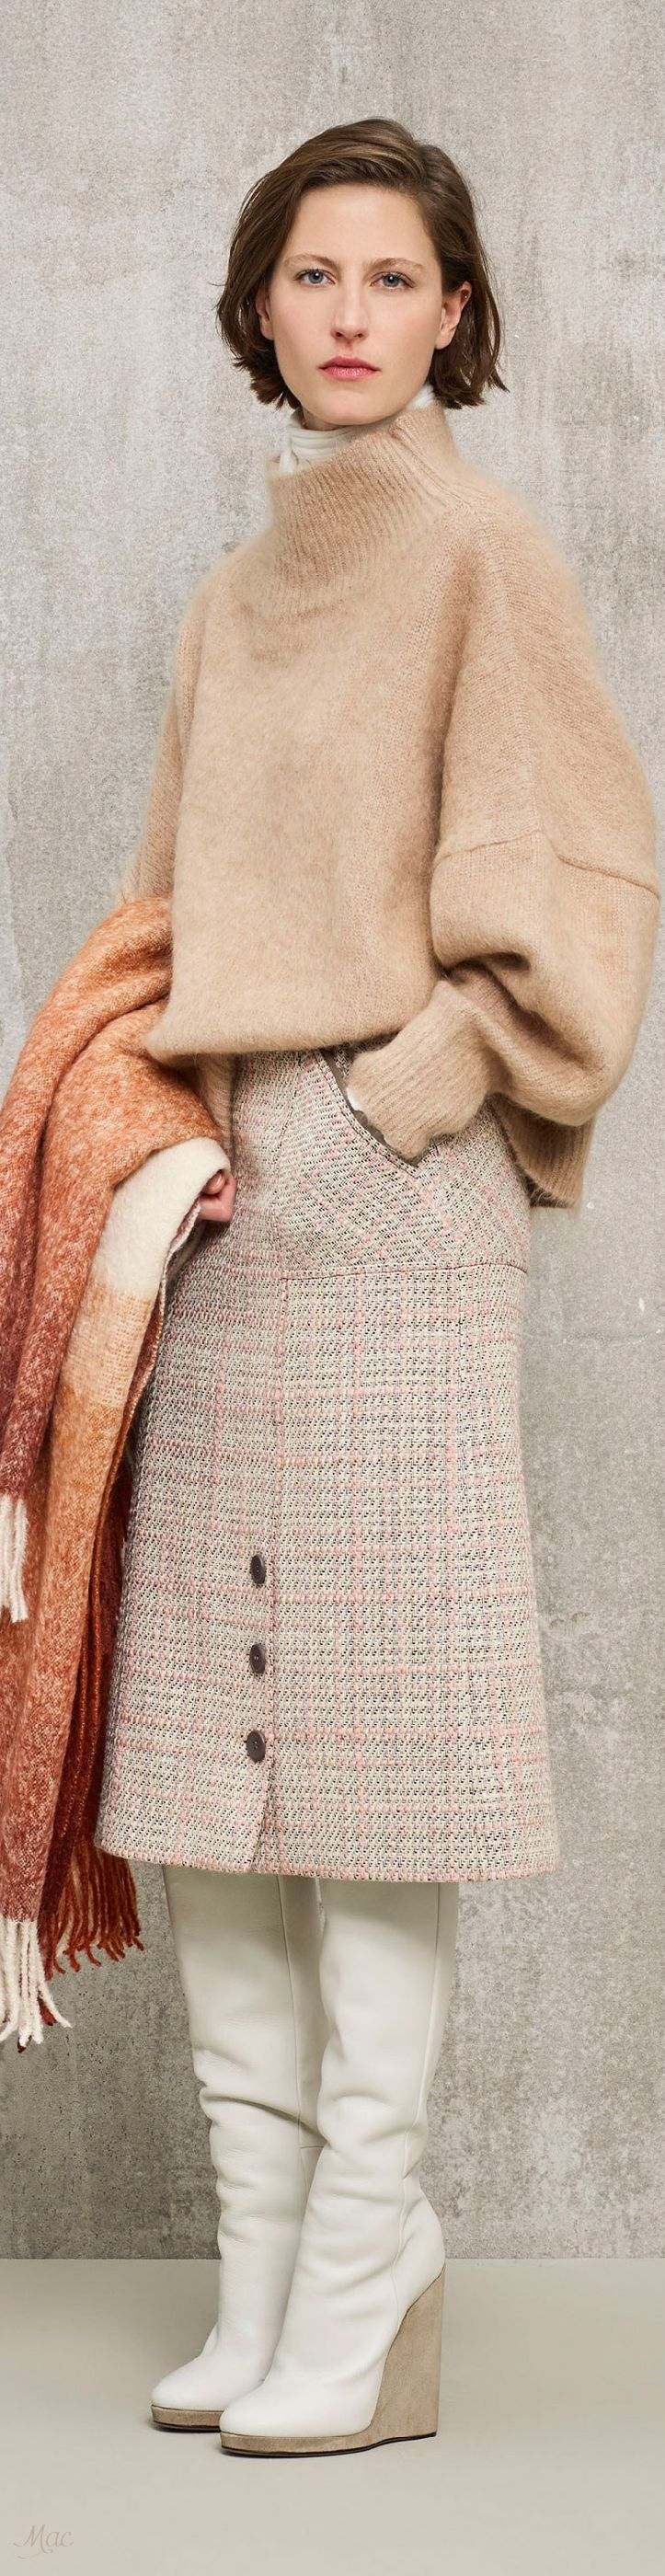 White boots+ plaid skirt+ beige oversize sweater+ orange coat.